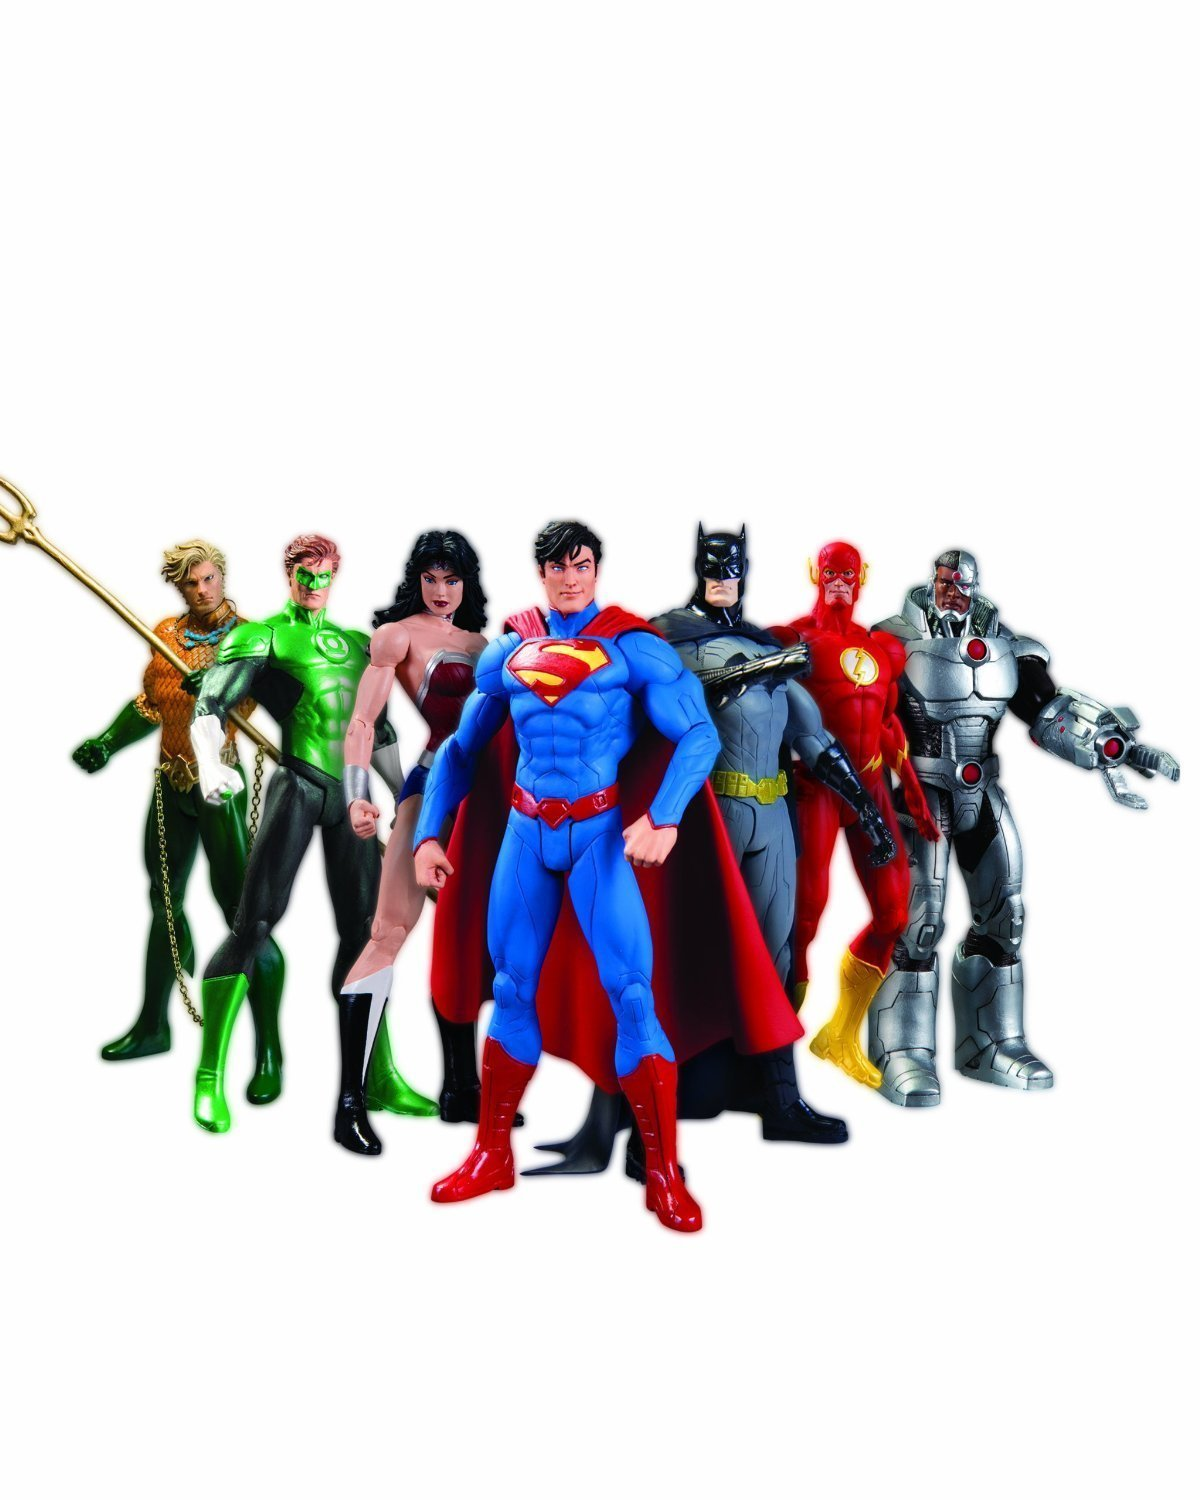 DC Justice League Collectible Figures